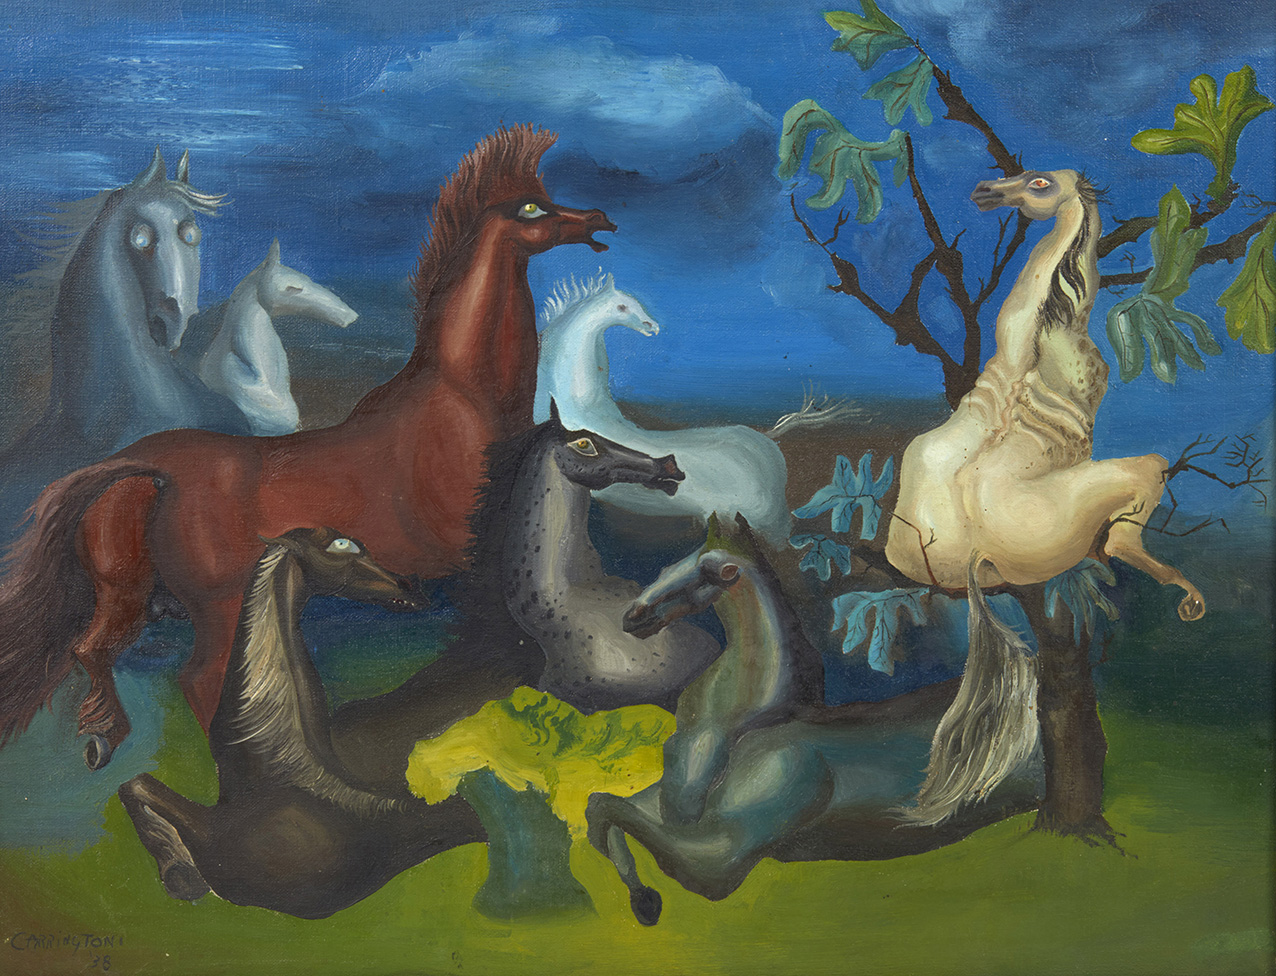 Leonora Carrington, Lord Candlestick's Horses, 1938, oil on canvas, signed and dated lower left, 35.5 x 46 cm (approx. 13.97 x 18.1 in).©